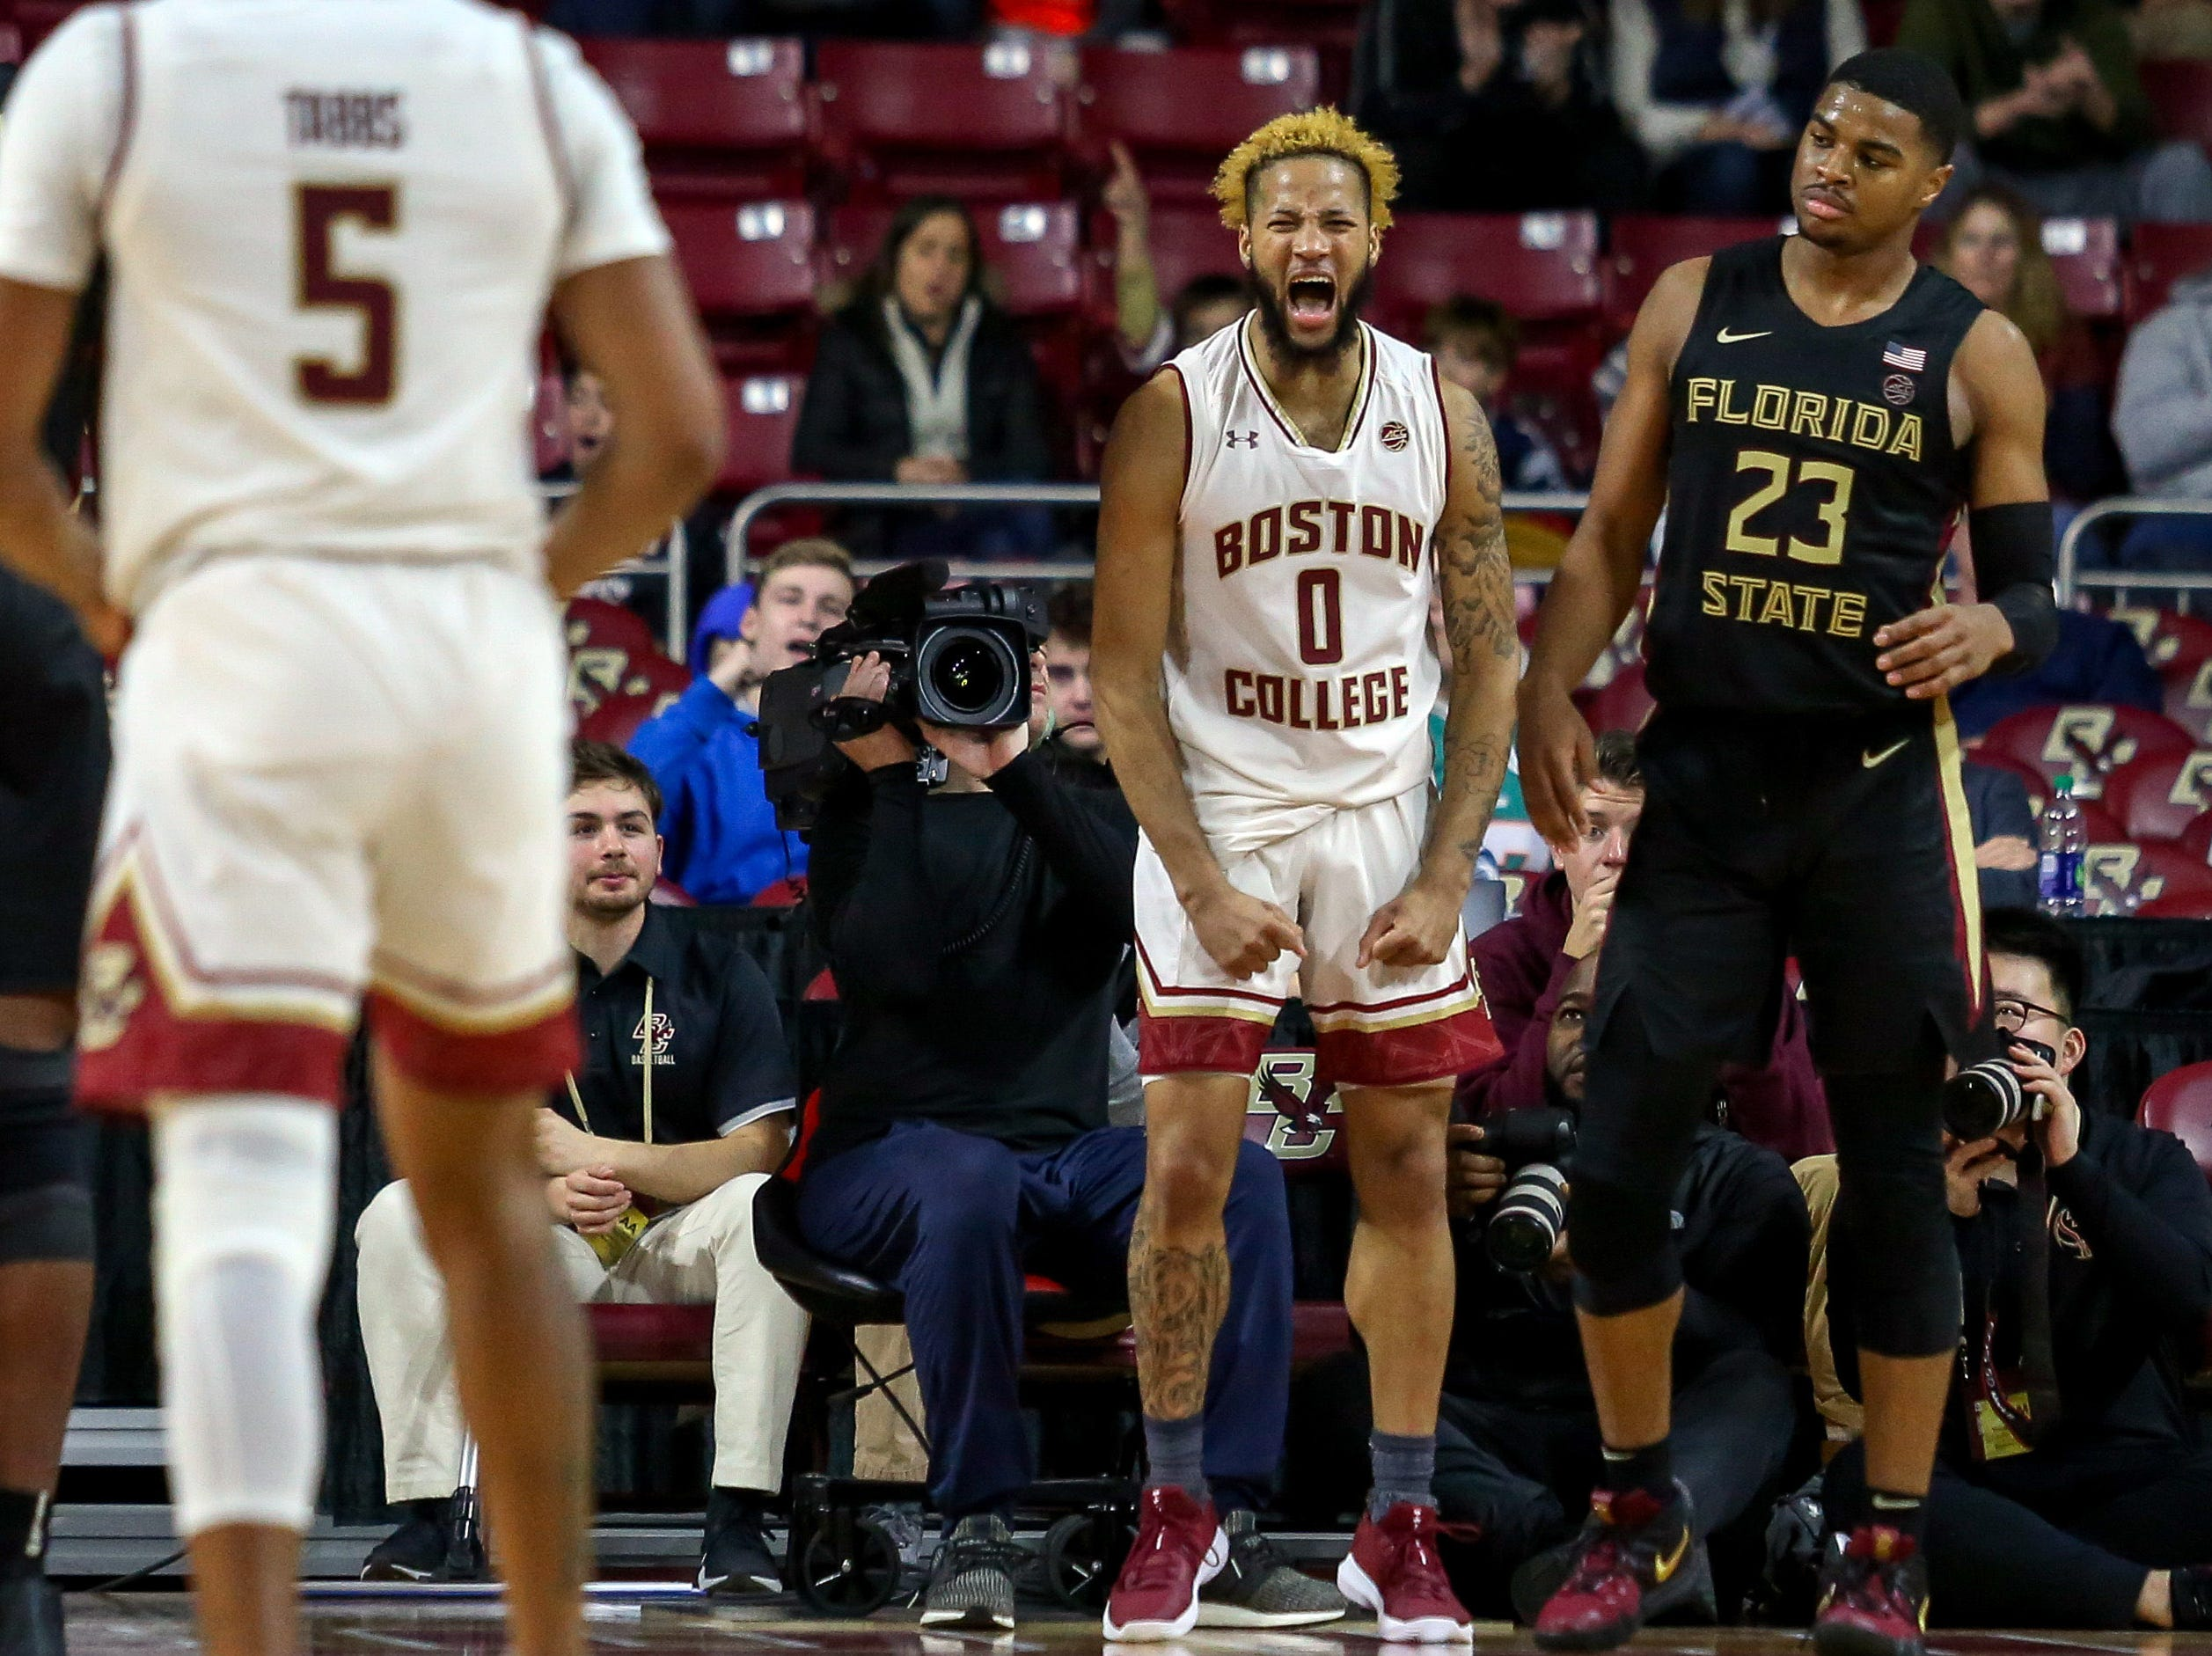 Jan 20, 2019; Chestnut Hill, MA, USA; Boston College Eagles guard Ky Bowman (0) reacts against the Florida State Seminoles during the second half at Conte Forum. Mandatory Credit: Paul Rutherford-USA TODAY Sports